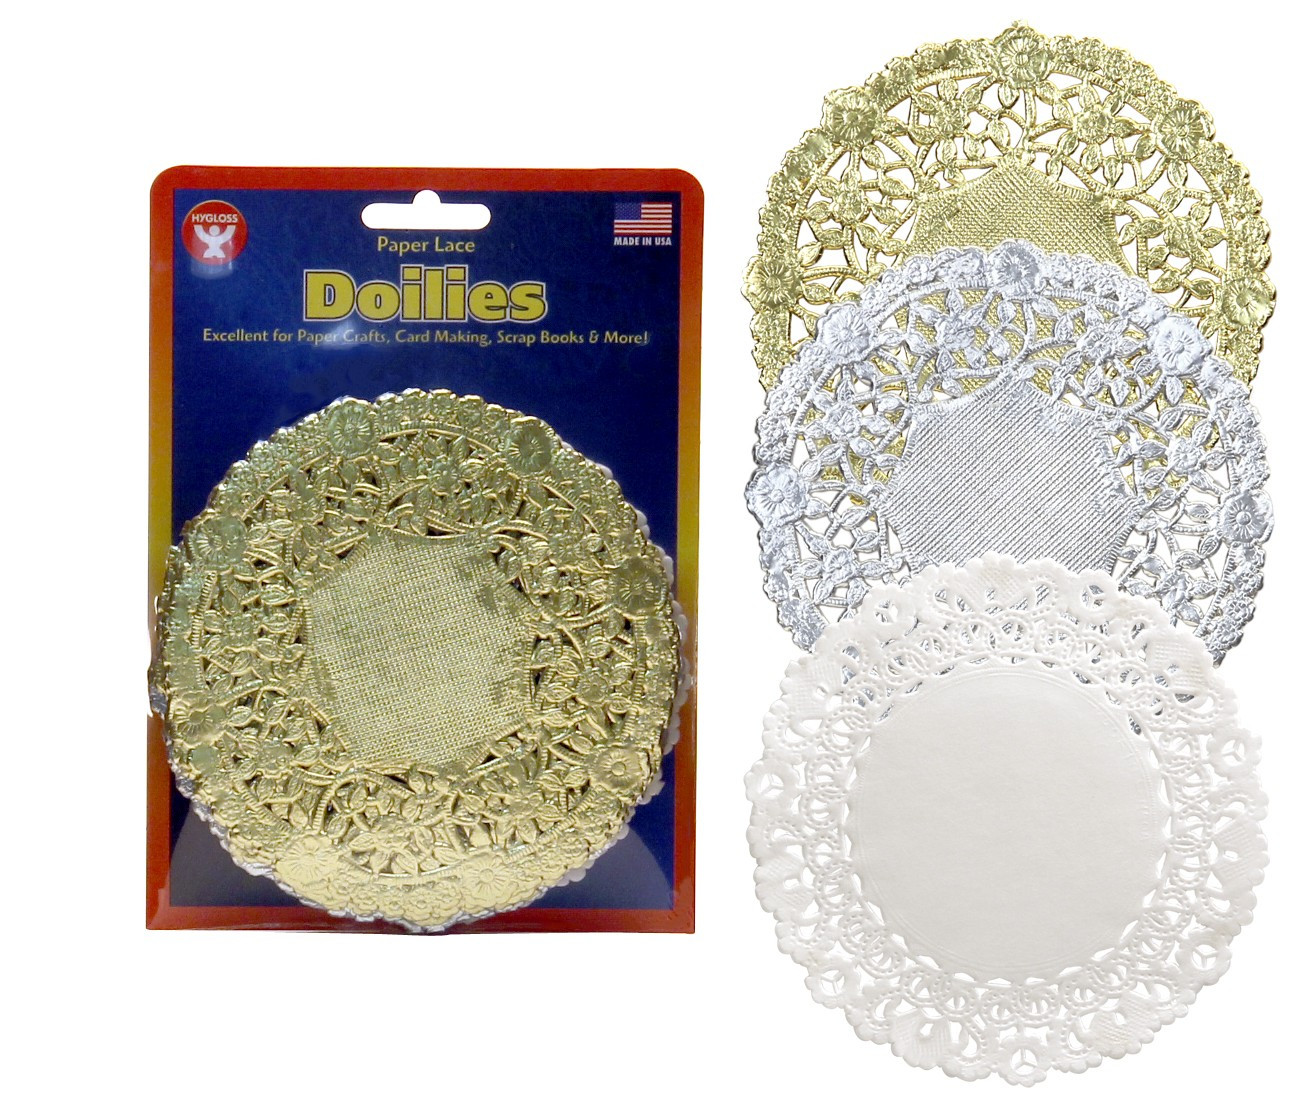 Round Paper Lace Doilies in White Gold & Silver Hygloss